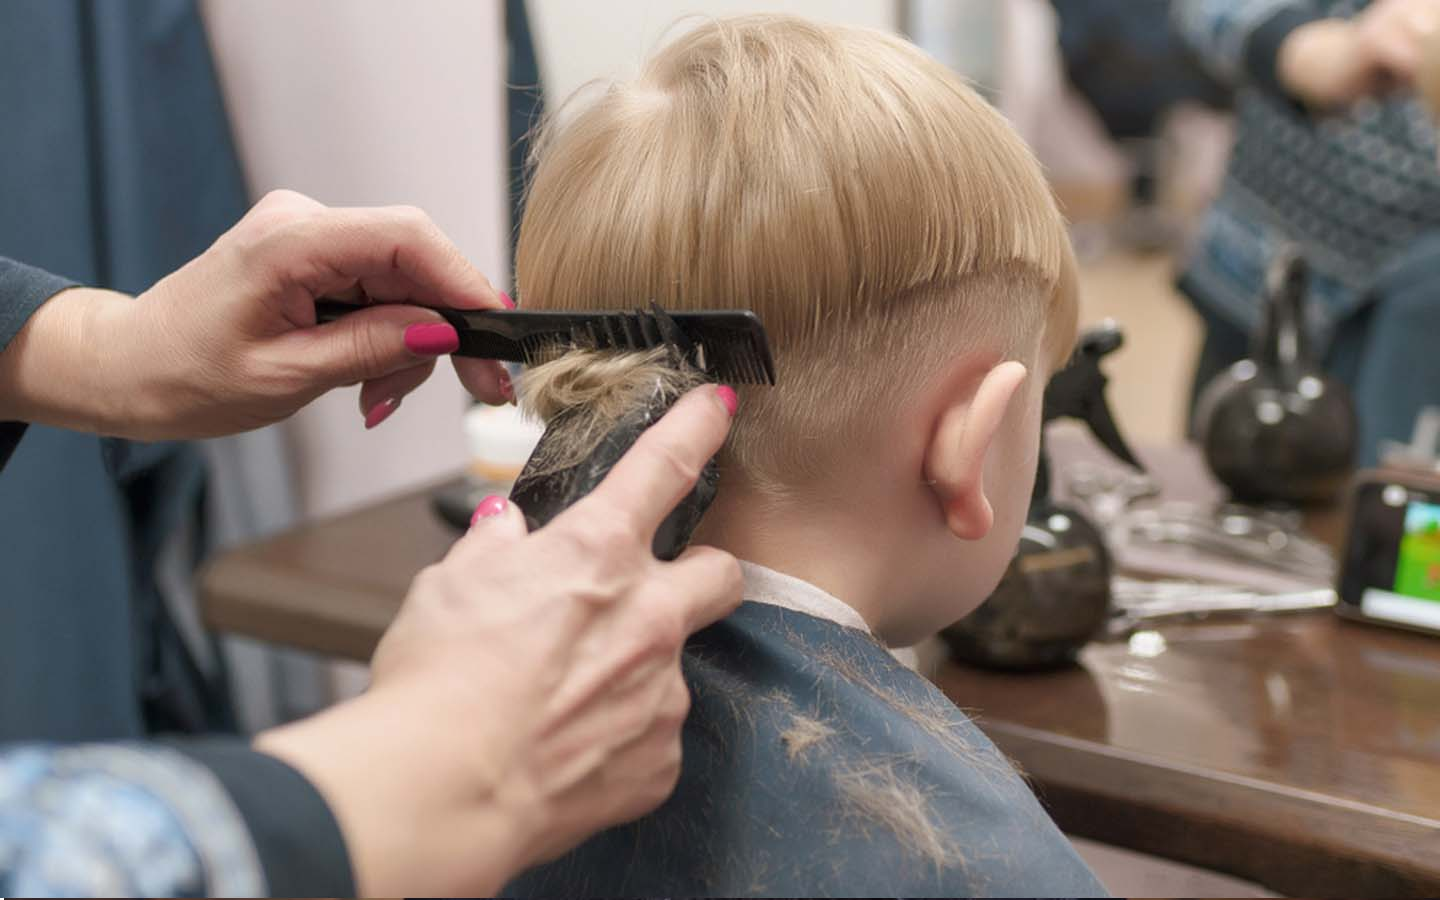 Baby boy hair cutting in one of the salons in Dubai